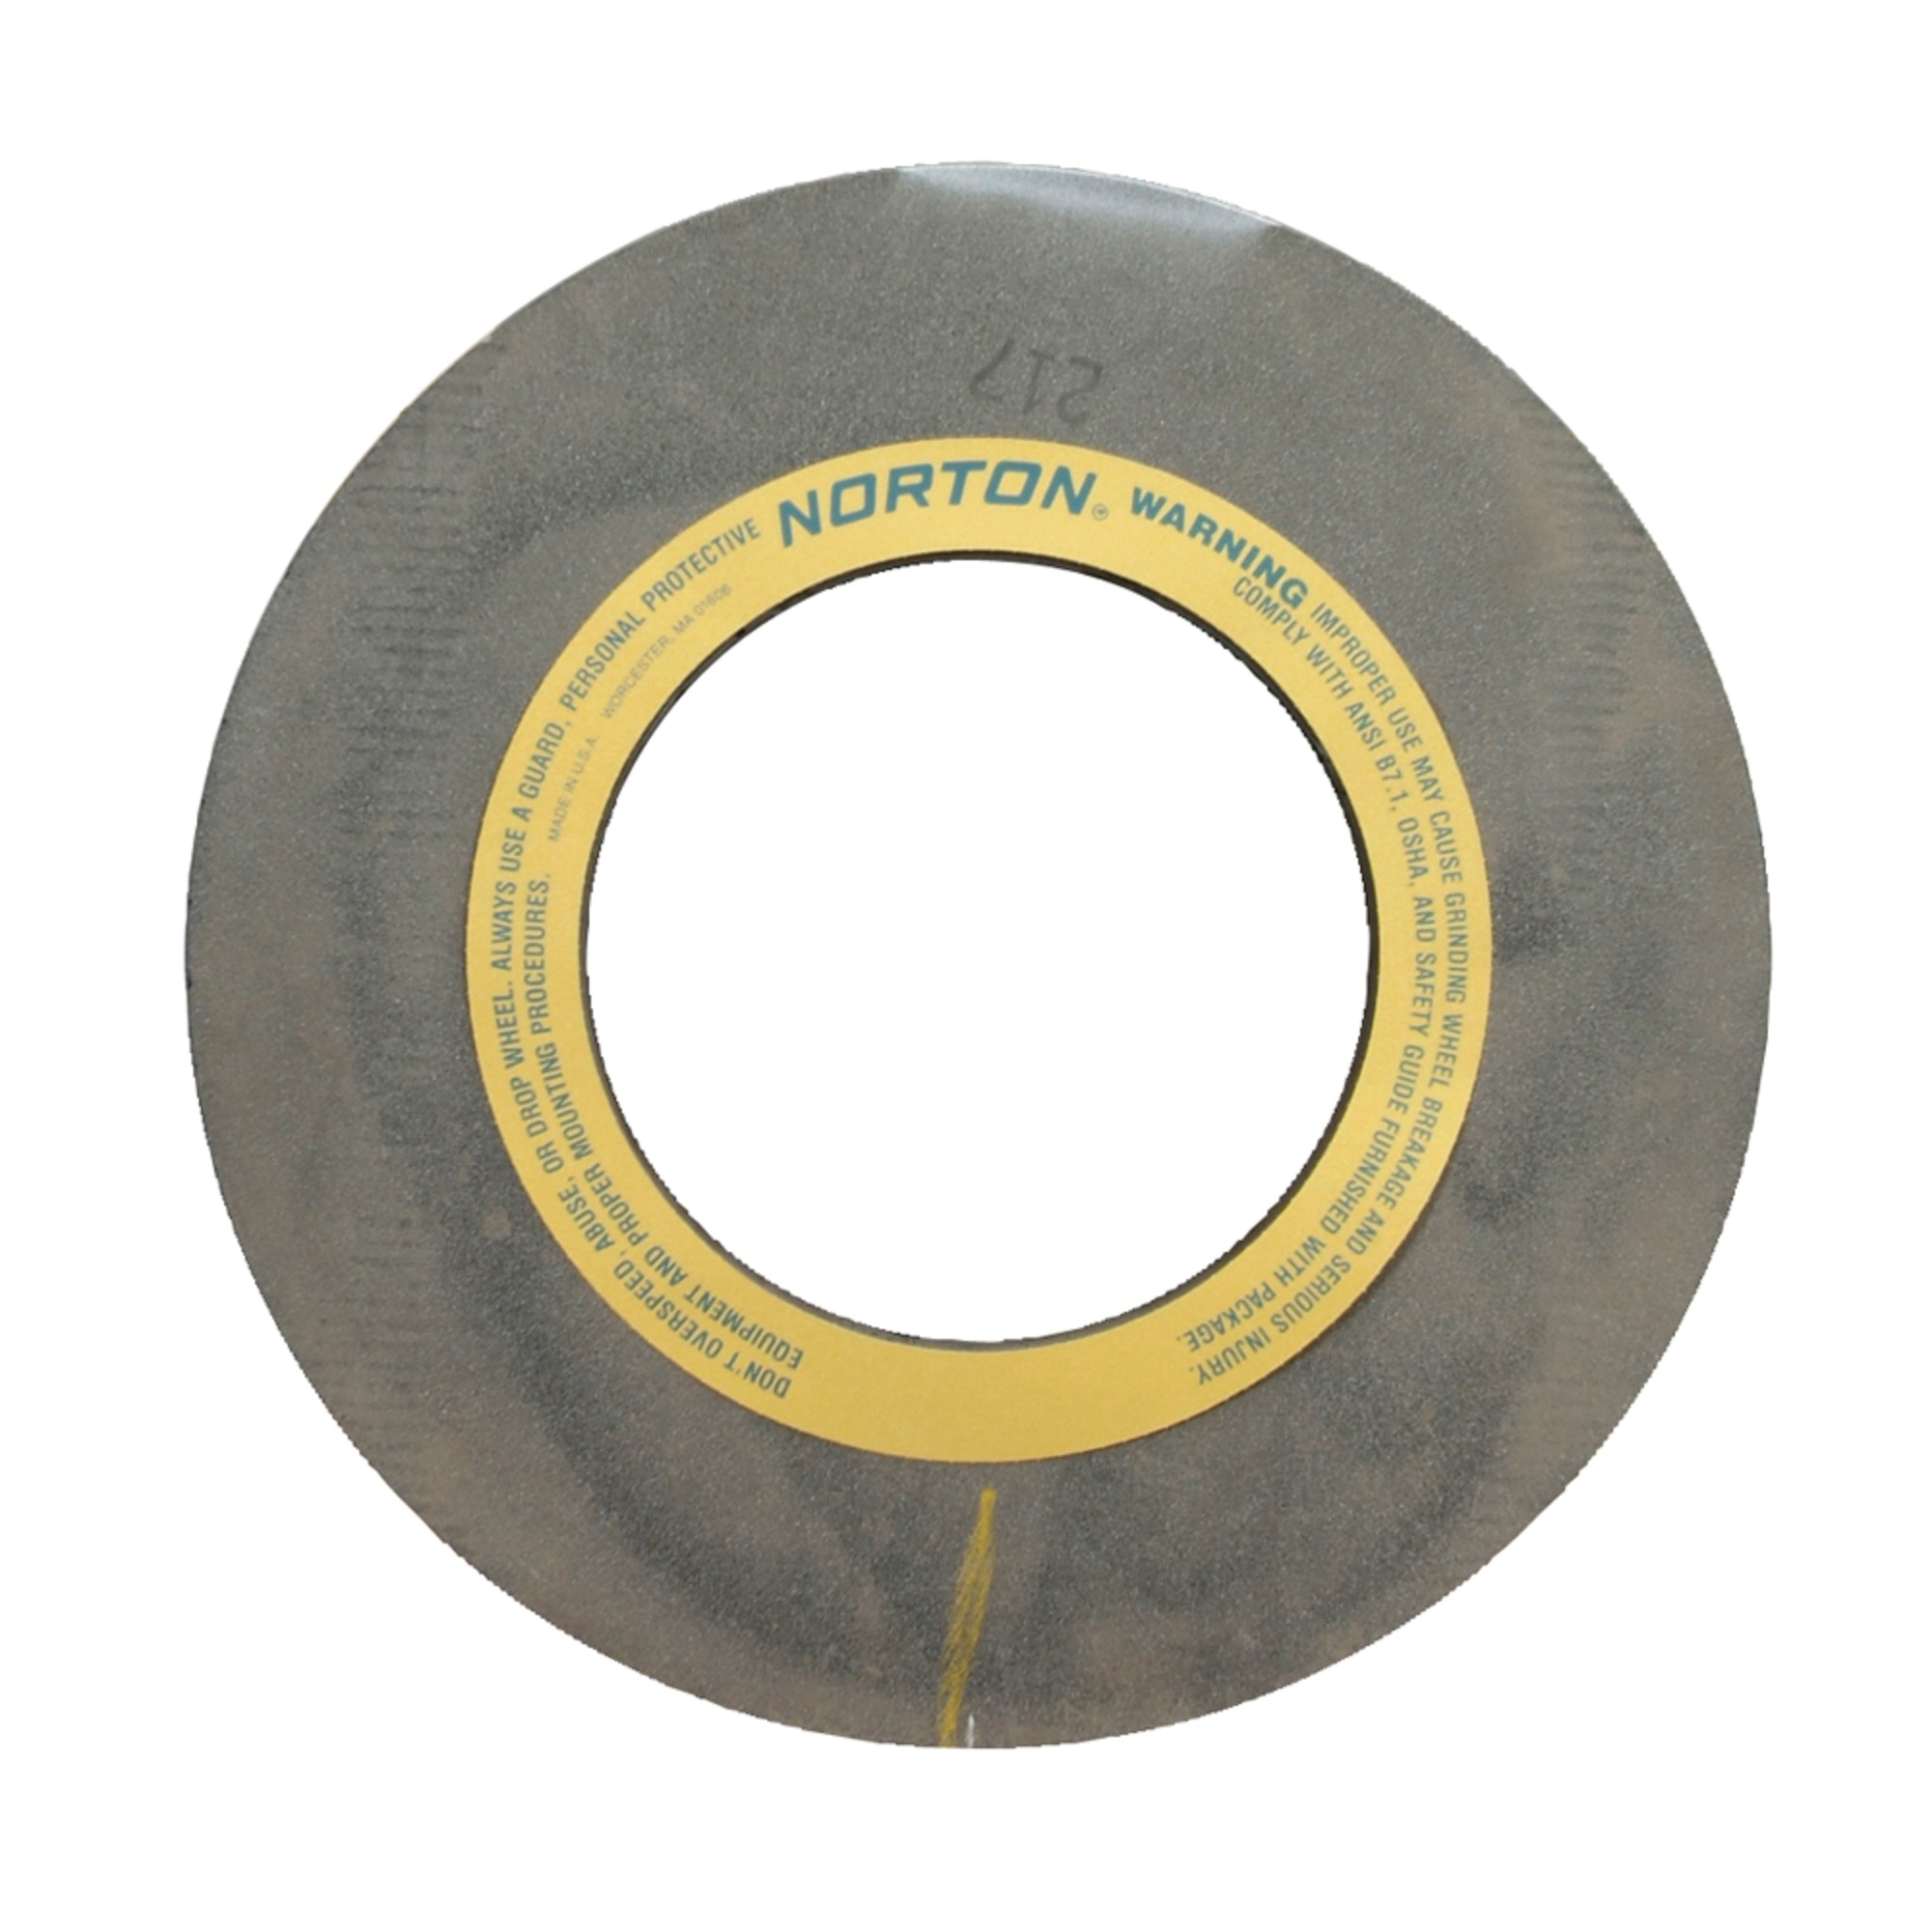 Norton® 69083166552 32A Straight Centerless Grinding Wheel, 24 in Dia x 20 in THK, 305 mm Center Hole, 54 Grit, Aluminum Oxide Abrasive